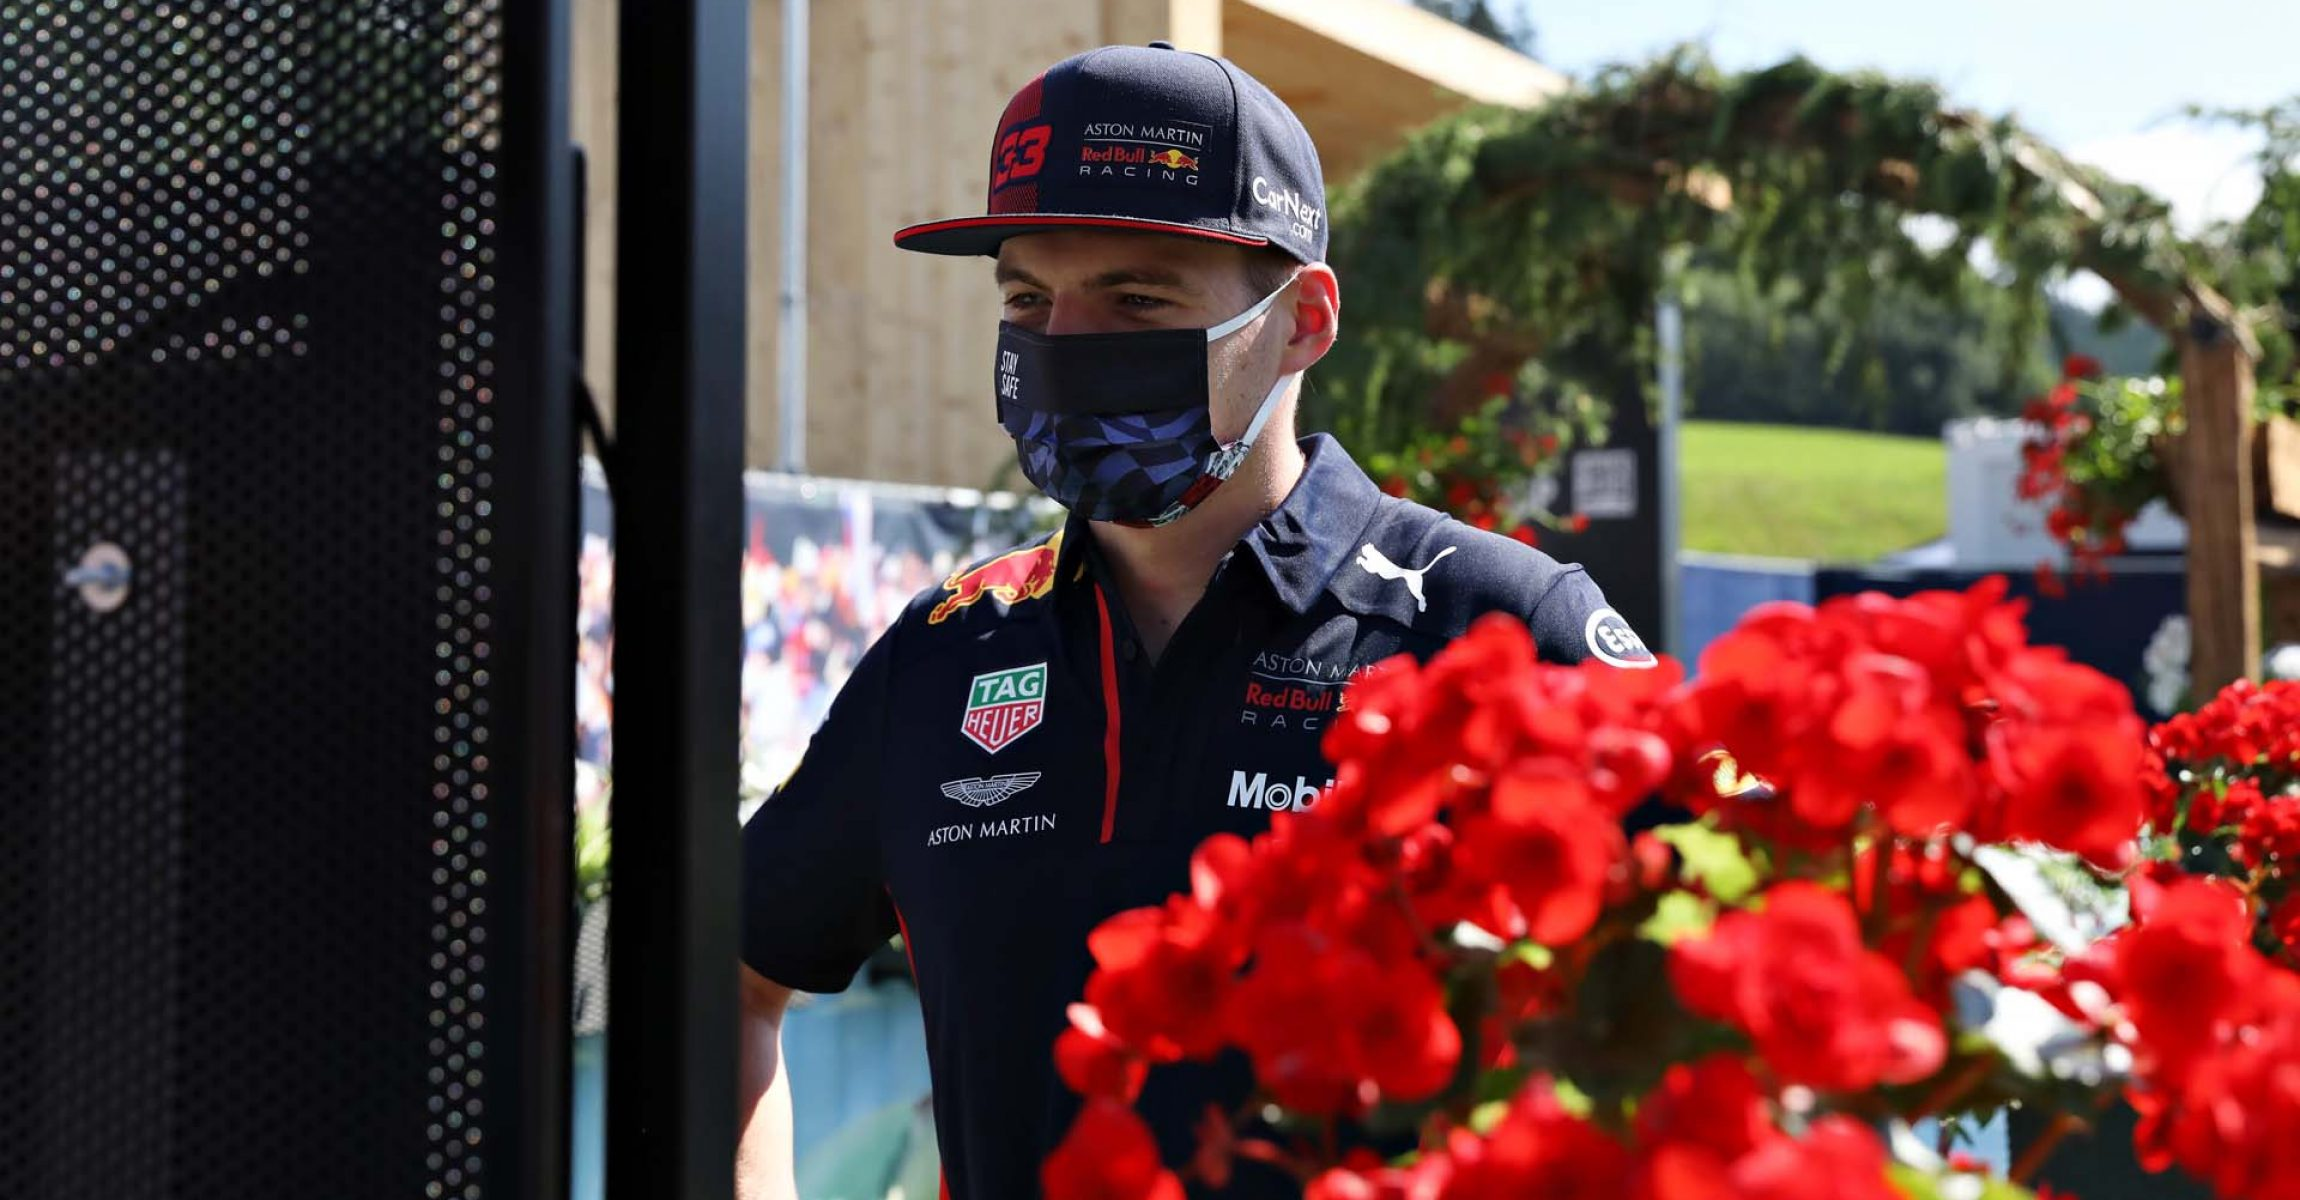 SPIELBERG, AUSTRIA - JULY 04: Max Verstappen of Netherlands and Red Bull Racing talks to fans on the Virtual Fan Walk before final practice for the Formula One Grand Prix of Austria at Red Bull Ring on July 04, 2020 in Spielberg, Austria. (Photo by Getty Images/Getty Images) // Getty Images / Red Bull Content Pool  // AP-24HBQKDPN2111 // Usage for editorial use only //